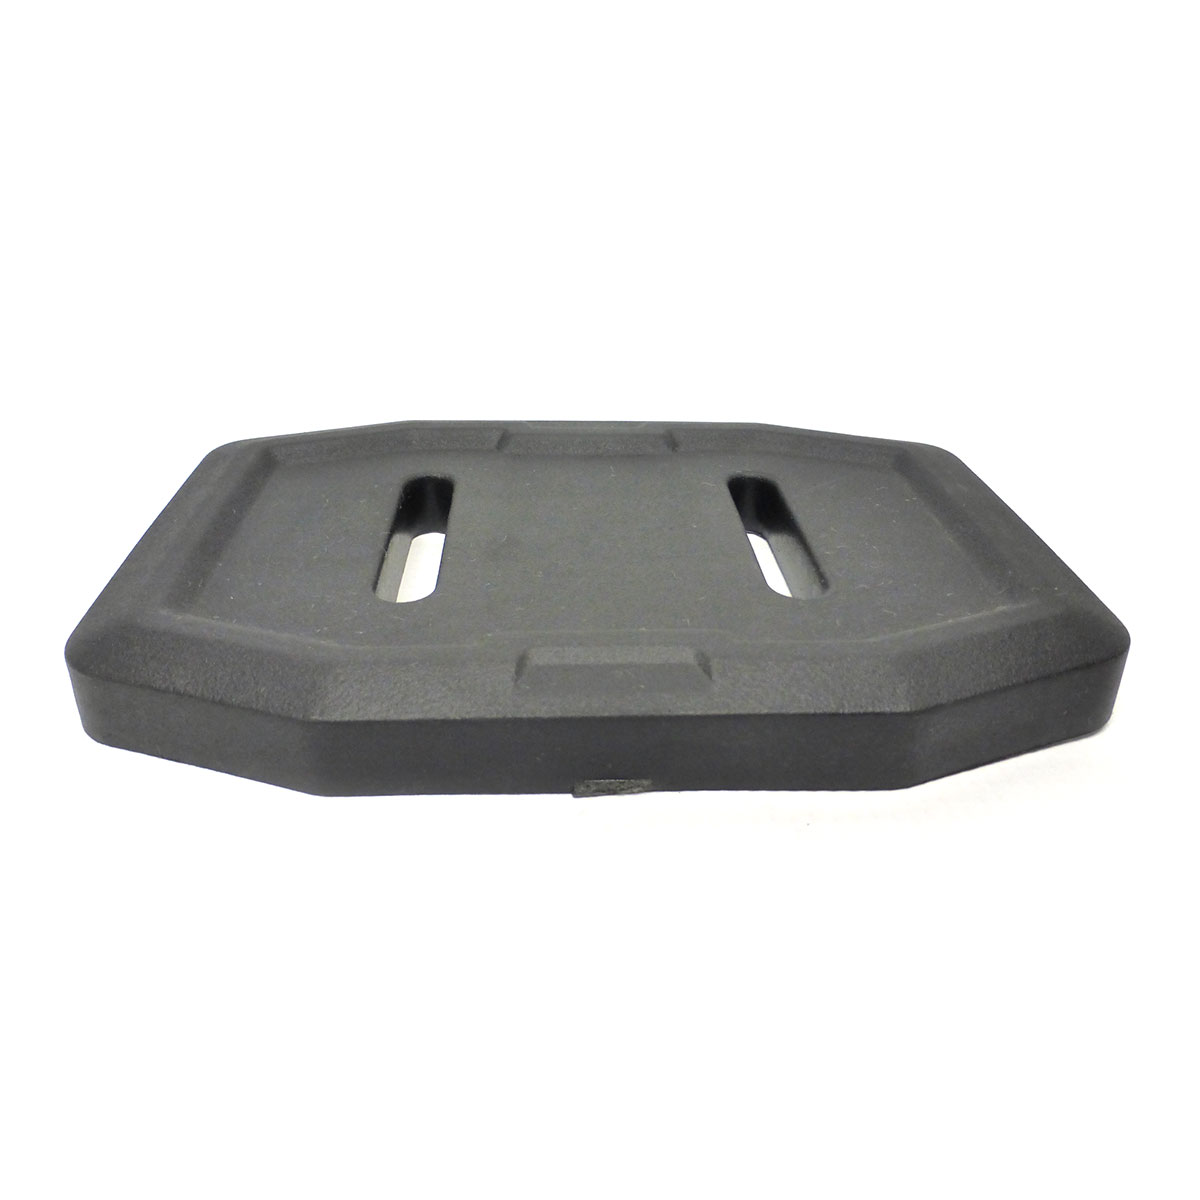 Husqvarna 583838801 Snow Blower Composite Skid Shoe Plate